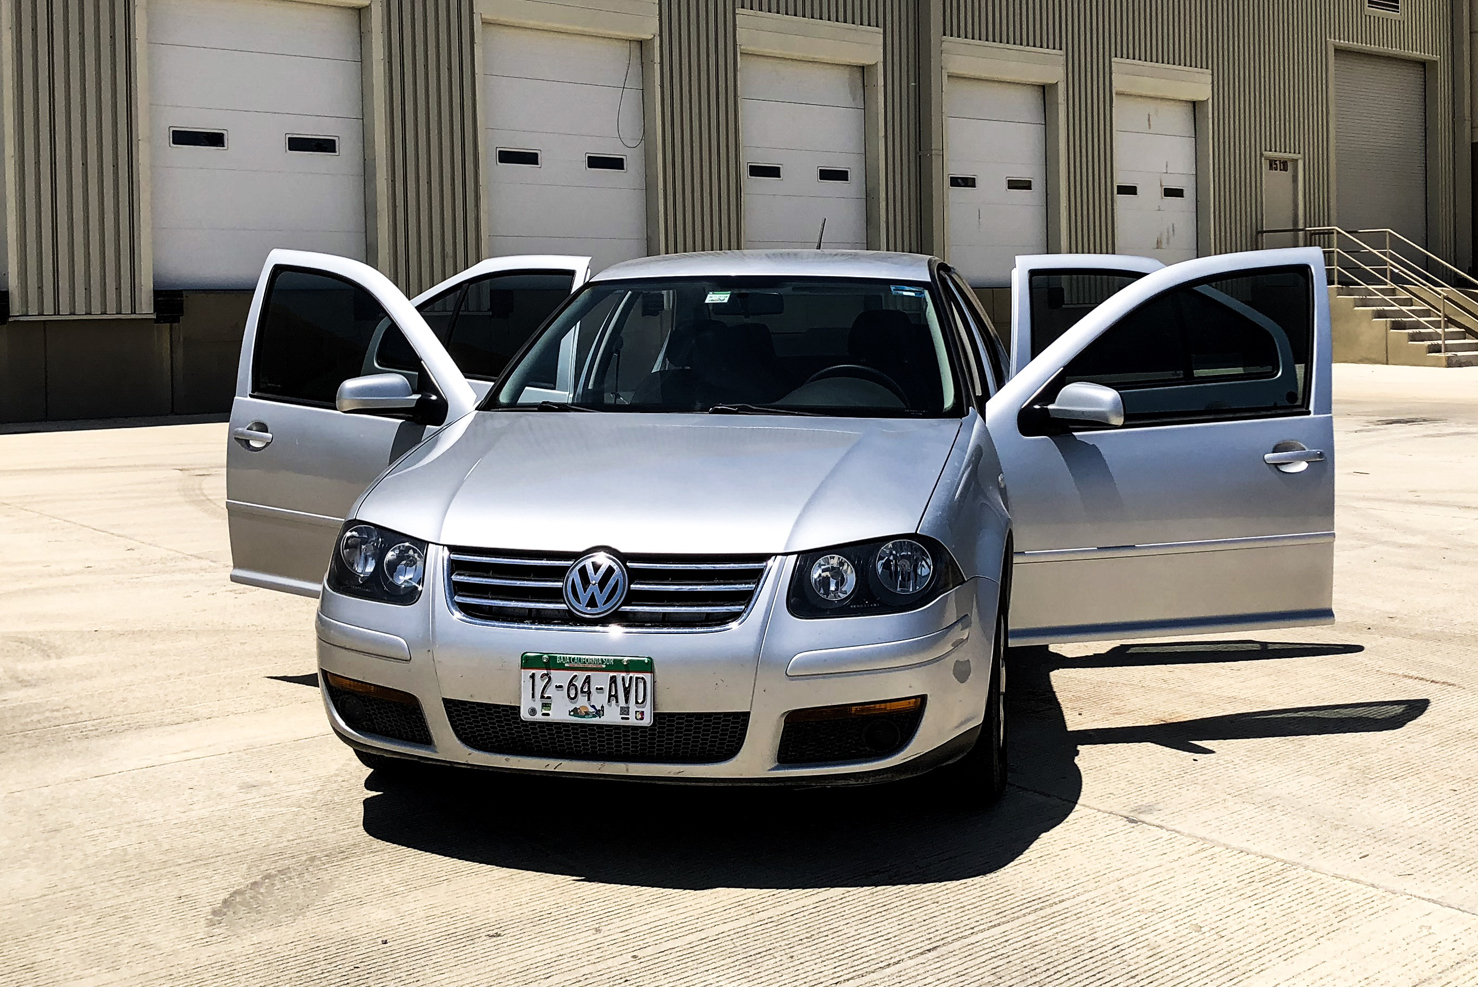 VW Jetta | BBB Rent a Car Los Cabos